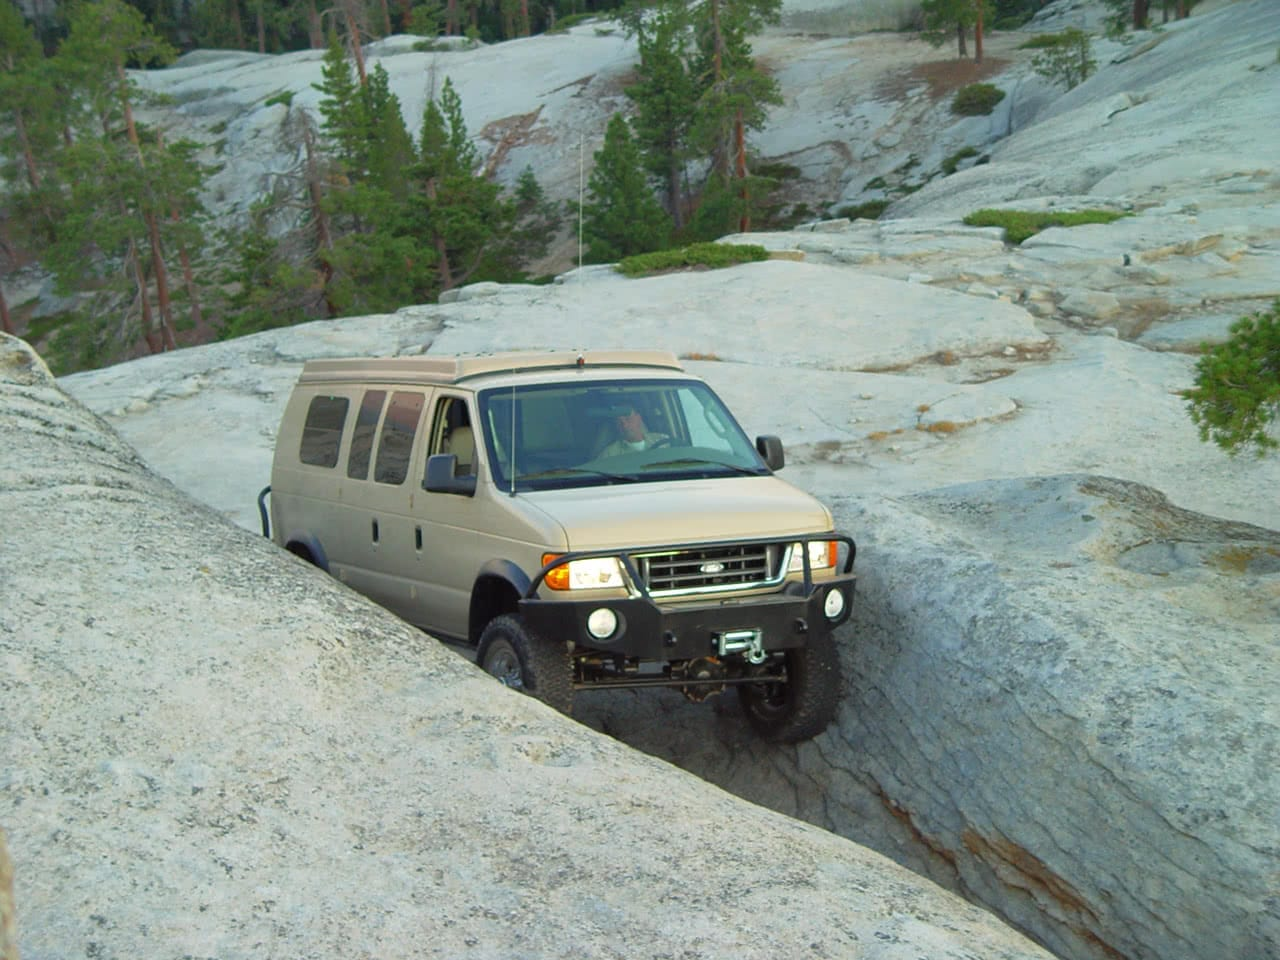 Sportsmobile Classic 4x4 in Bald Mountain Adventure